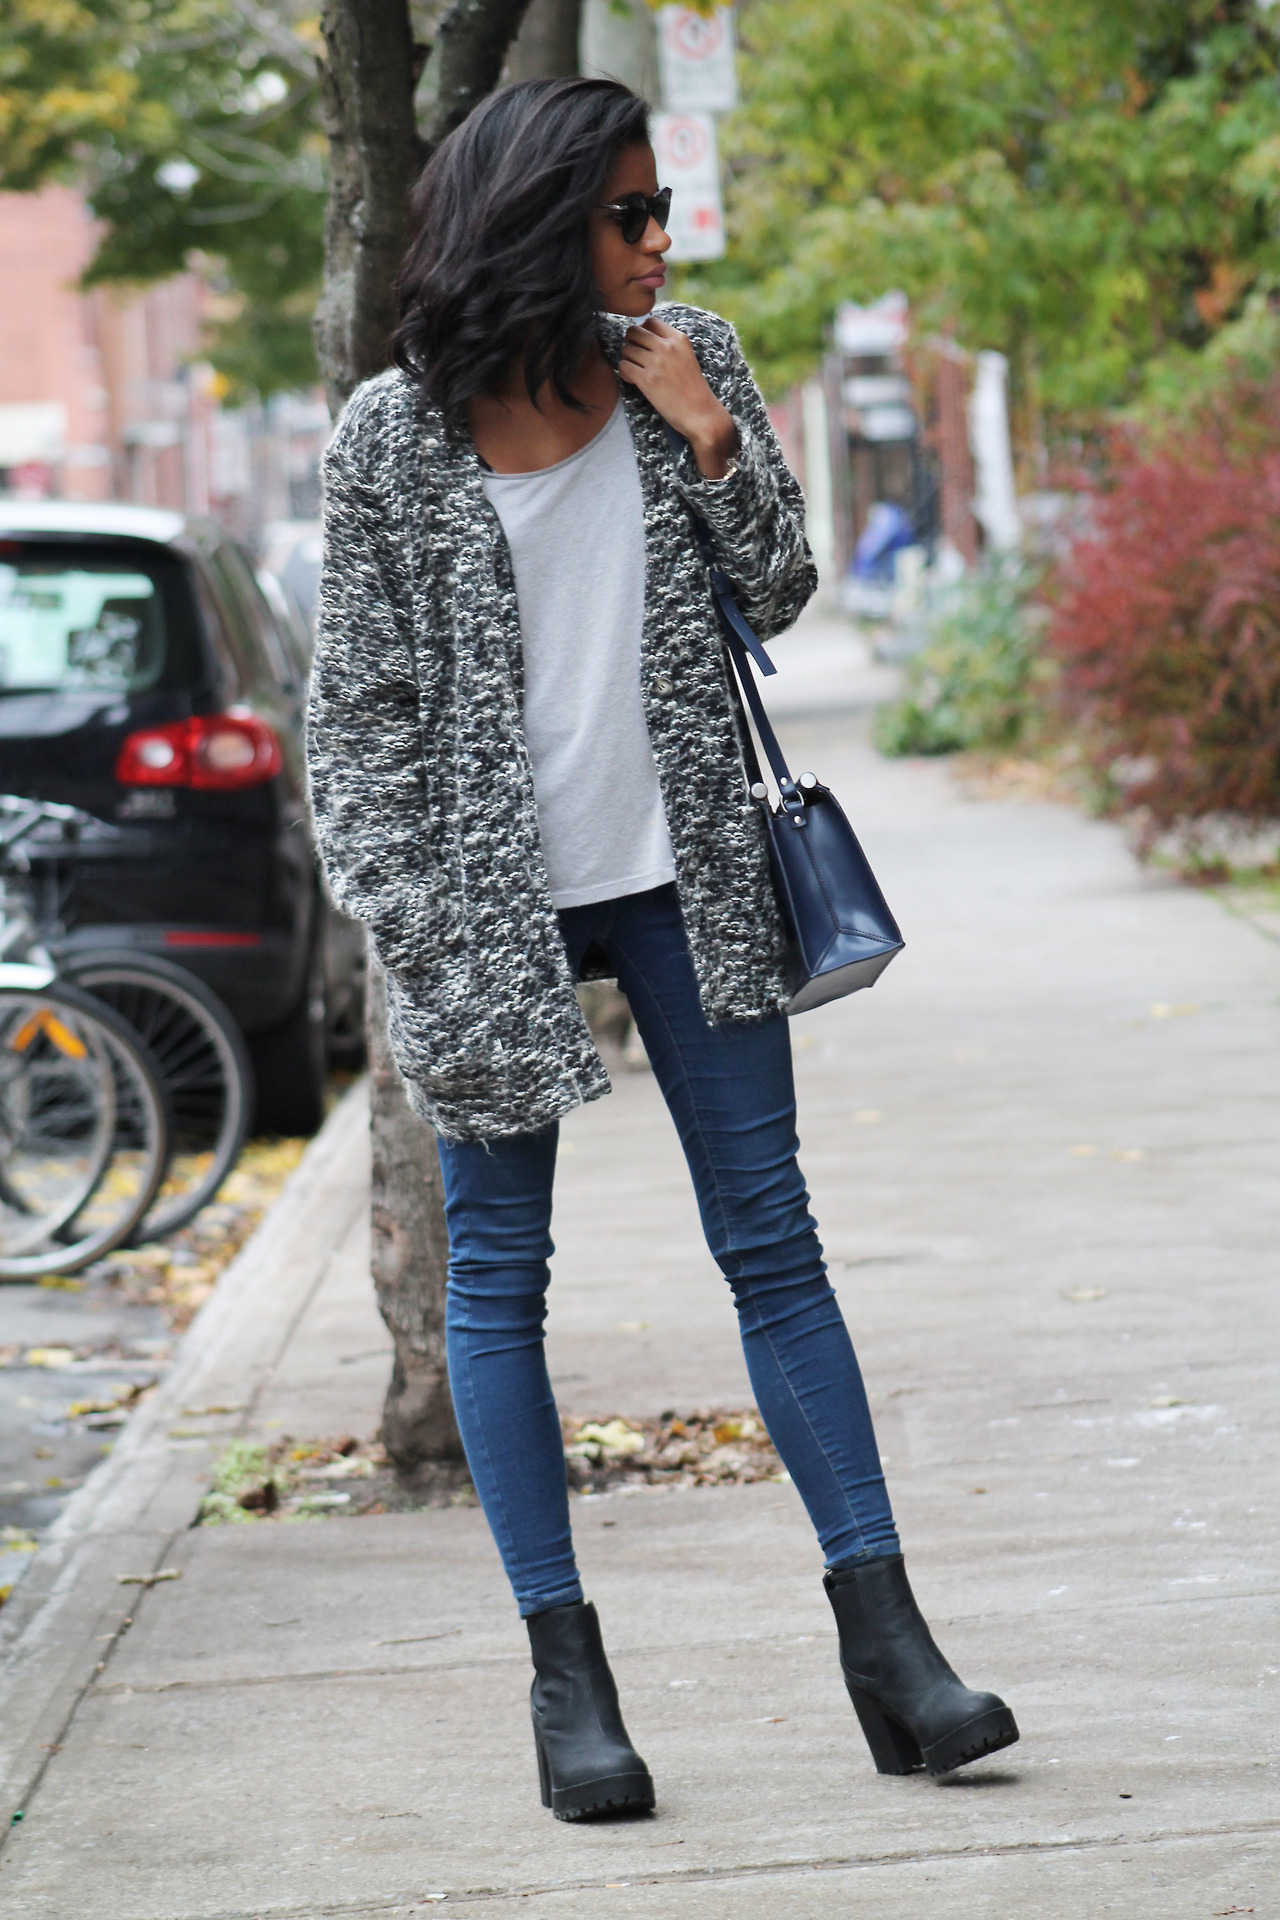 Lama from Babes In Velvet is wearing a grey textured cardigan from Thrifted